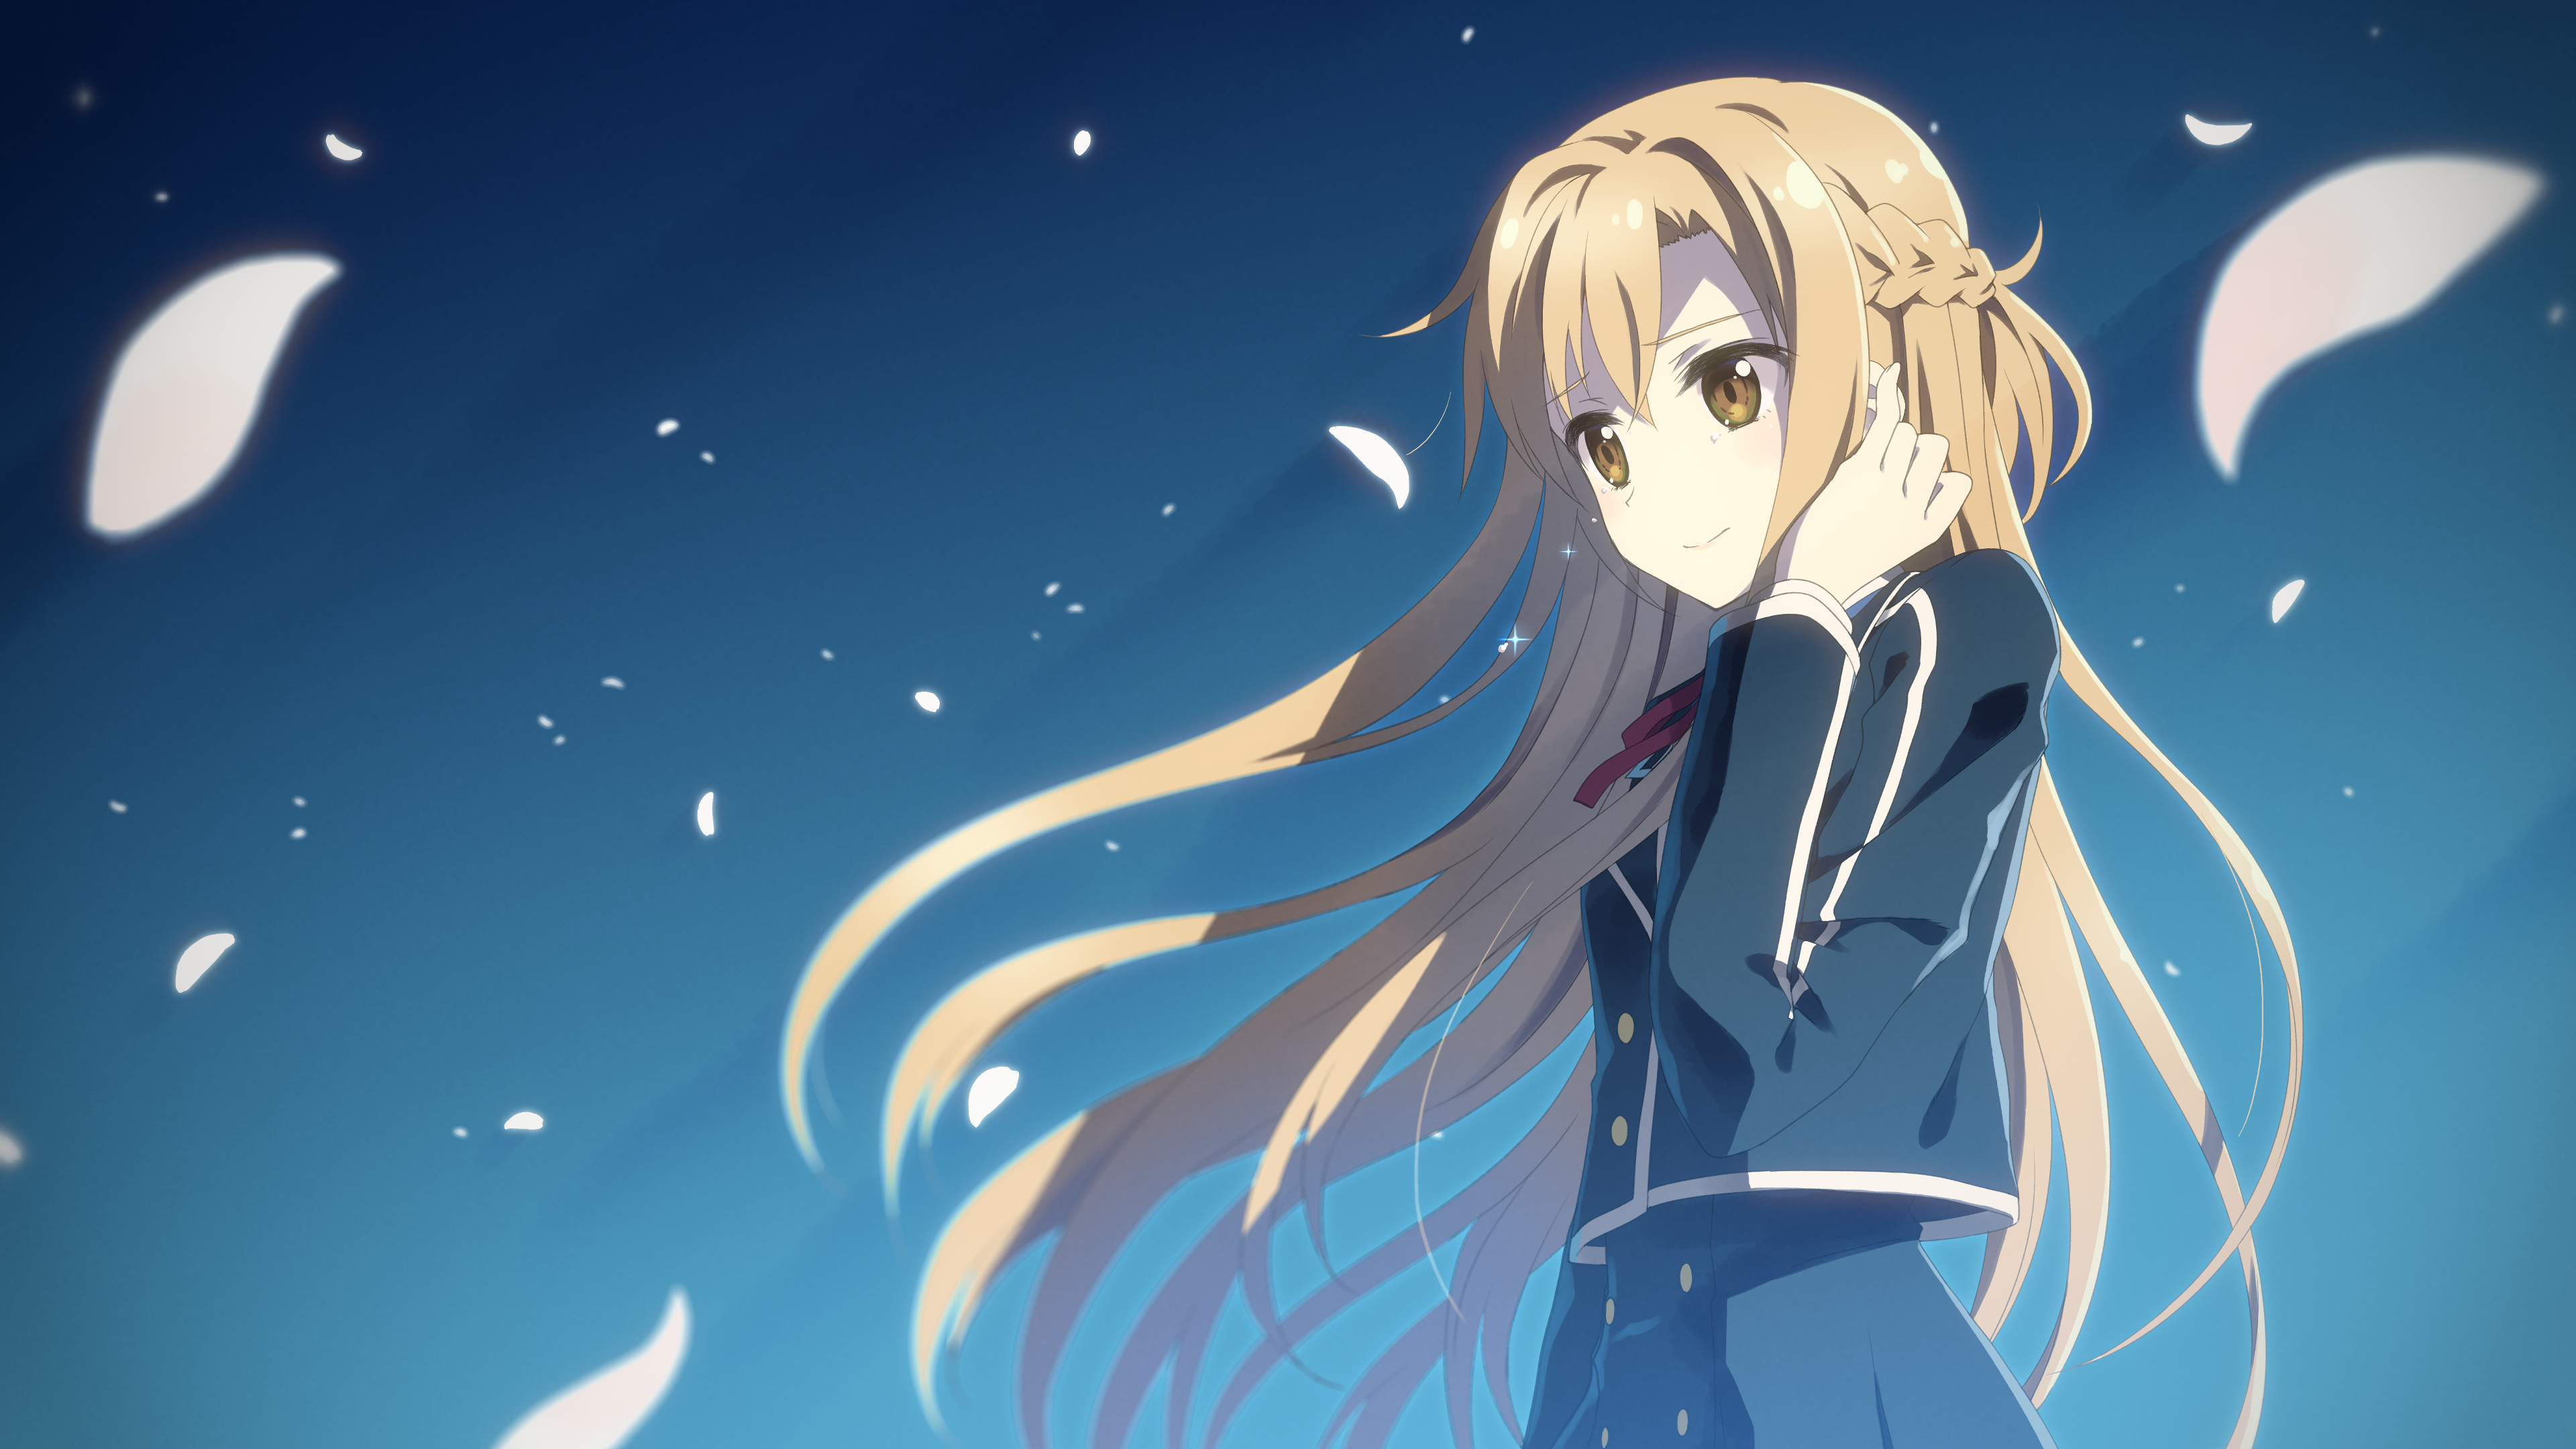 Yuuki Asuna Sword Art Online Hd Wallpaper 1915590